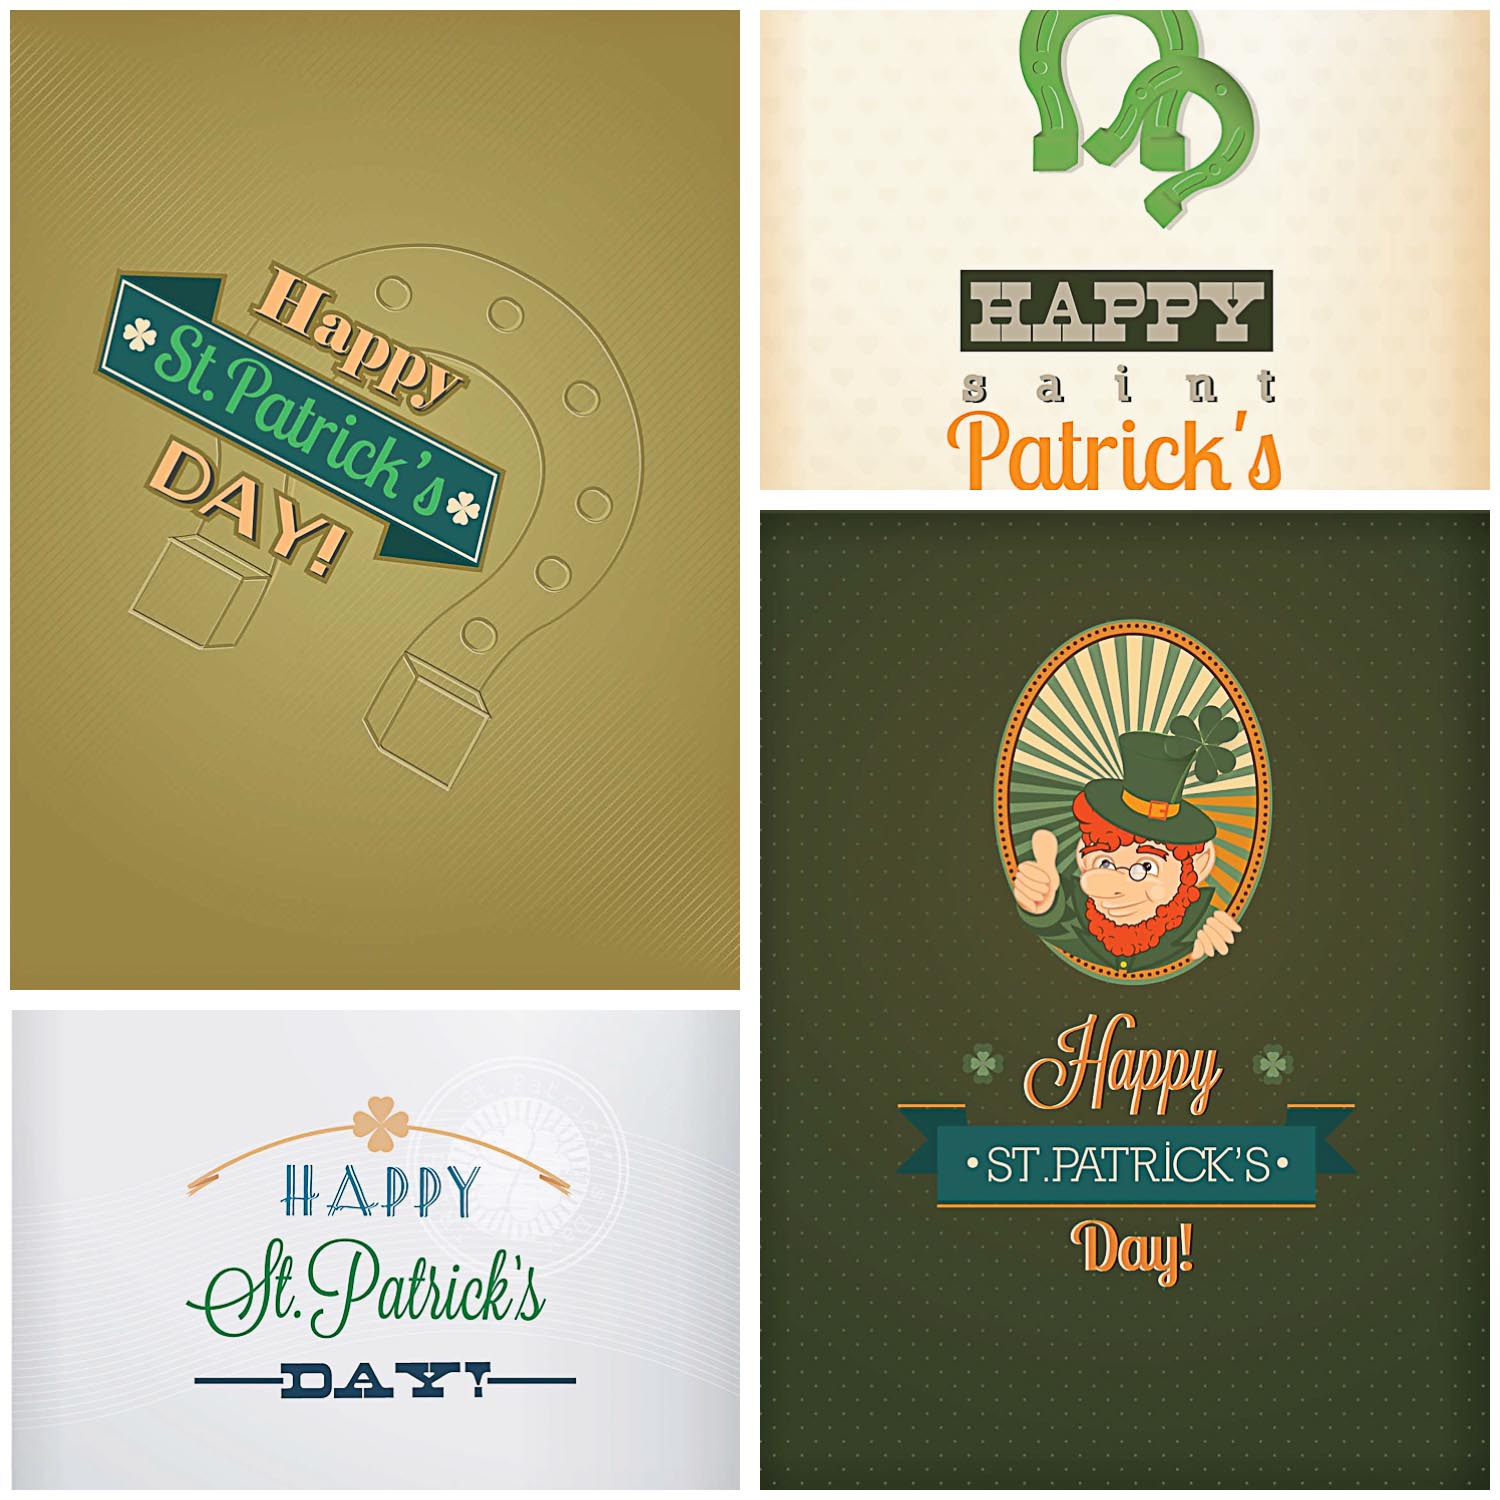 Saint Patrick's Day greeting funny card vector